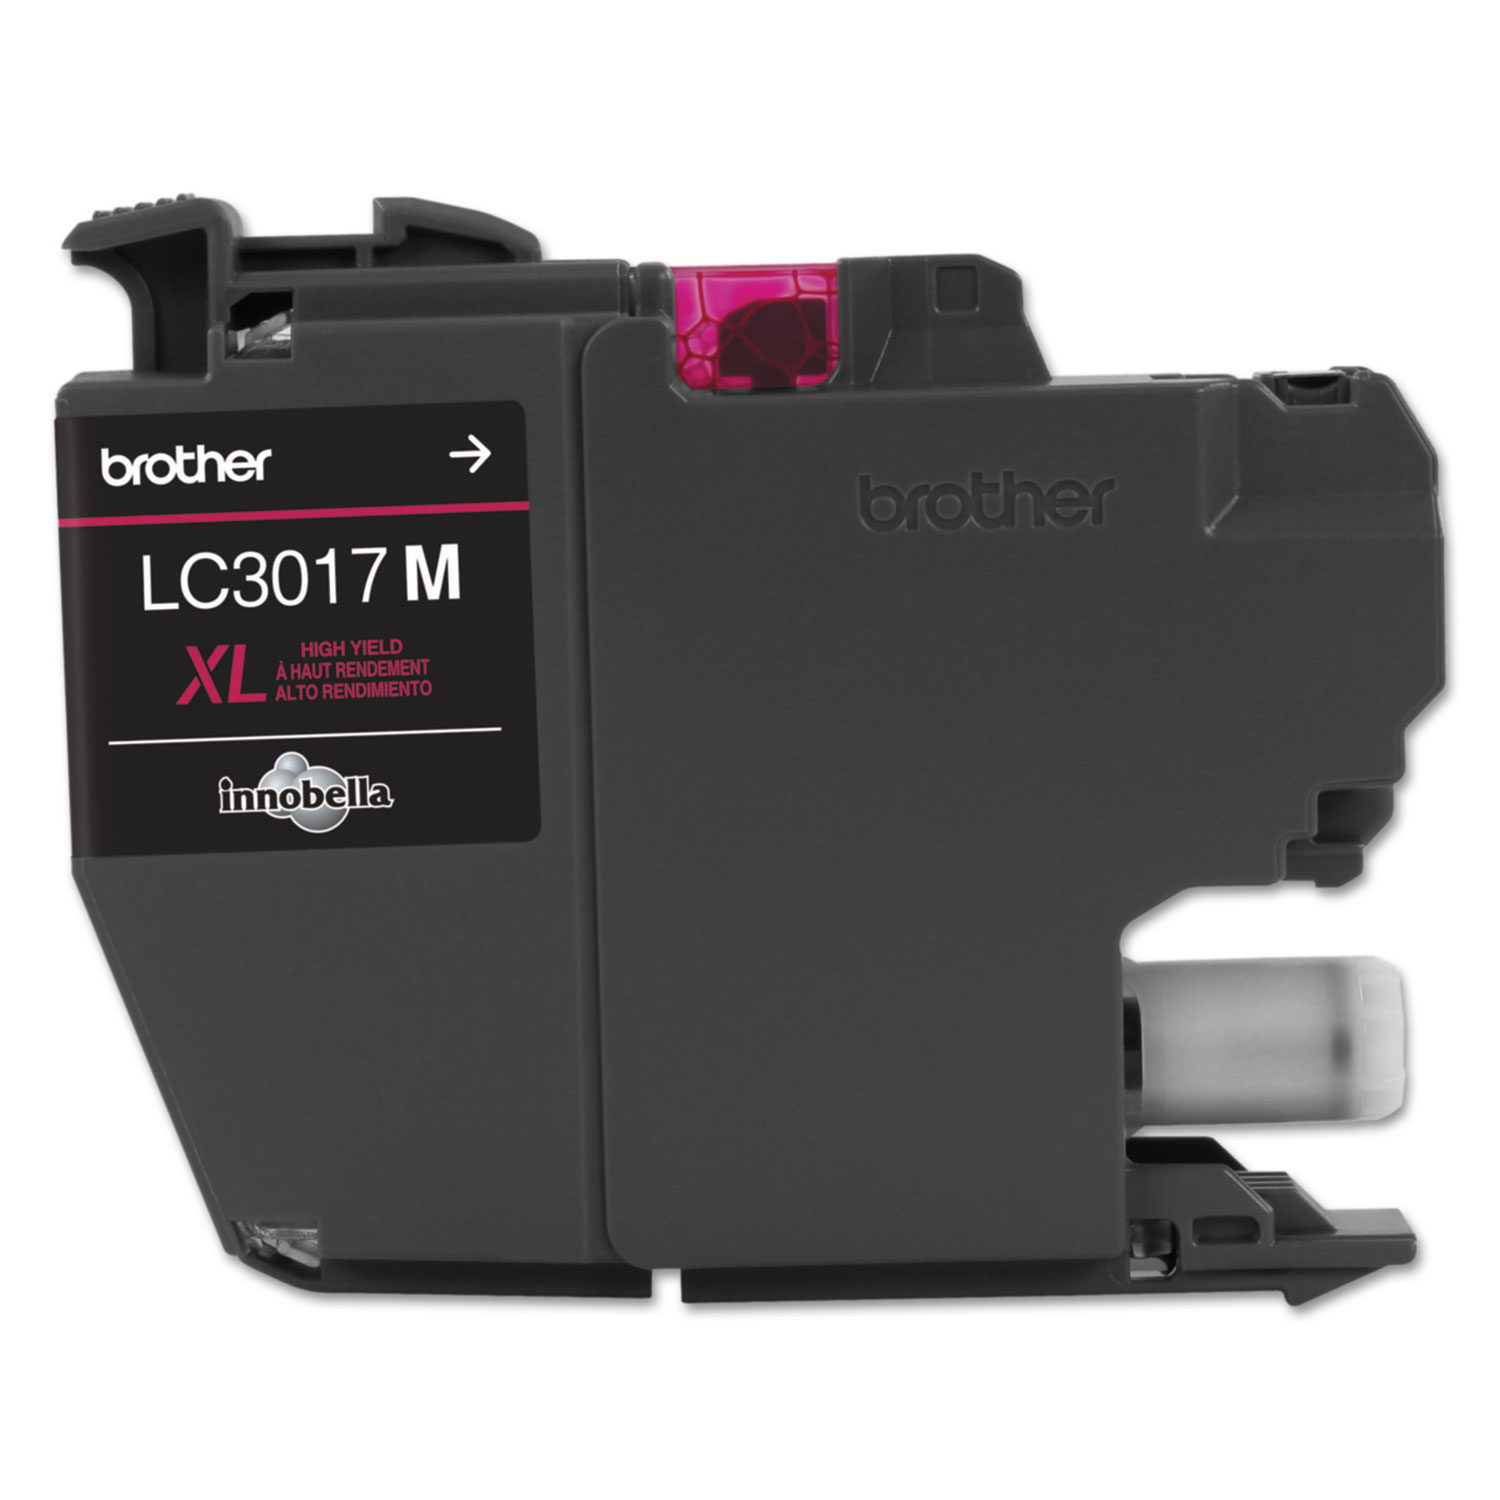 LC3017M Innobella High-Yield Ink, 550 Page-Yield, Magenta